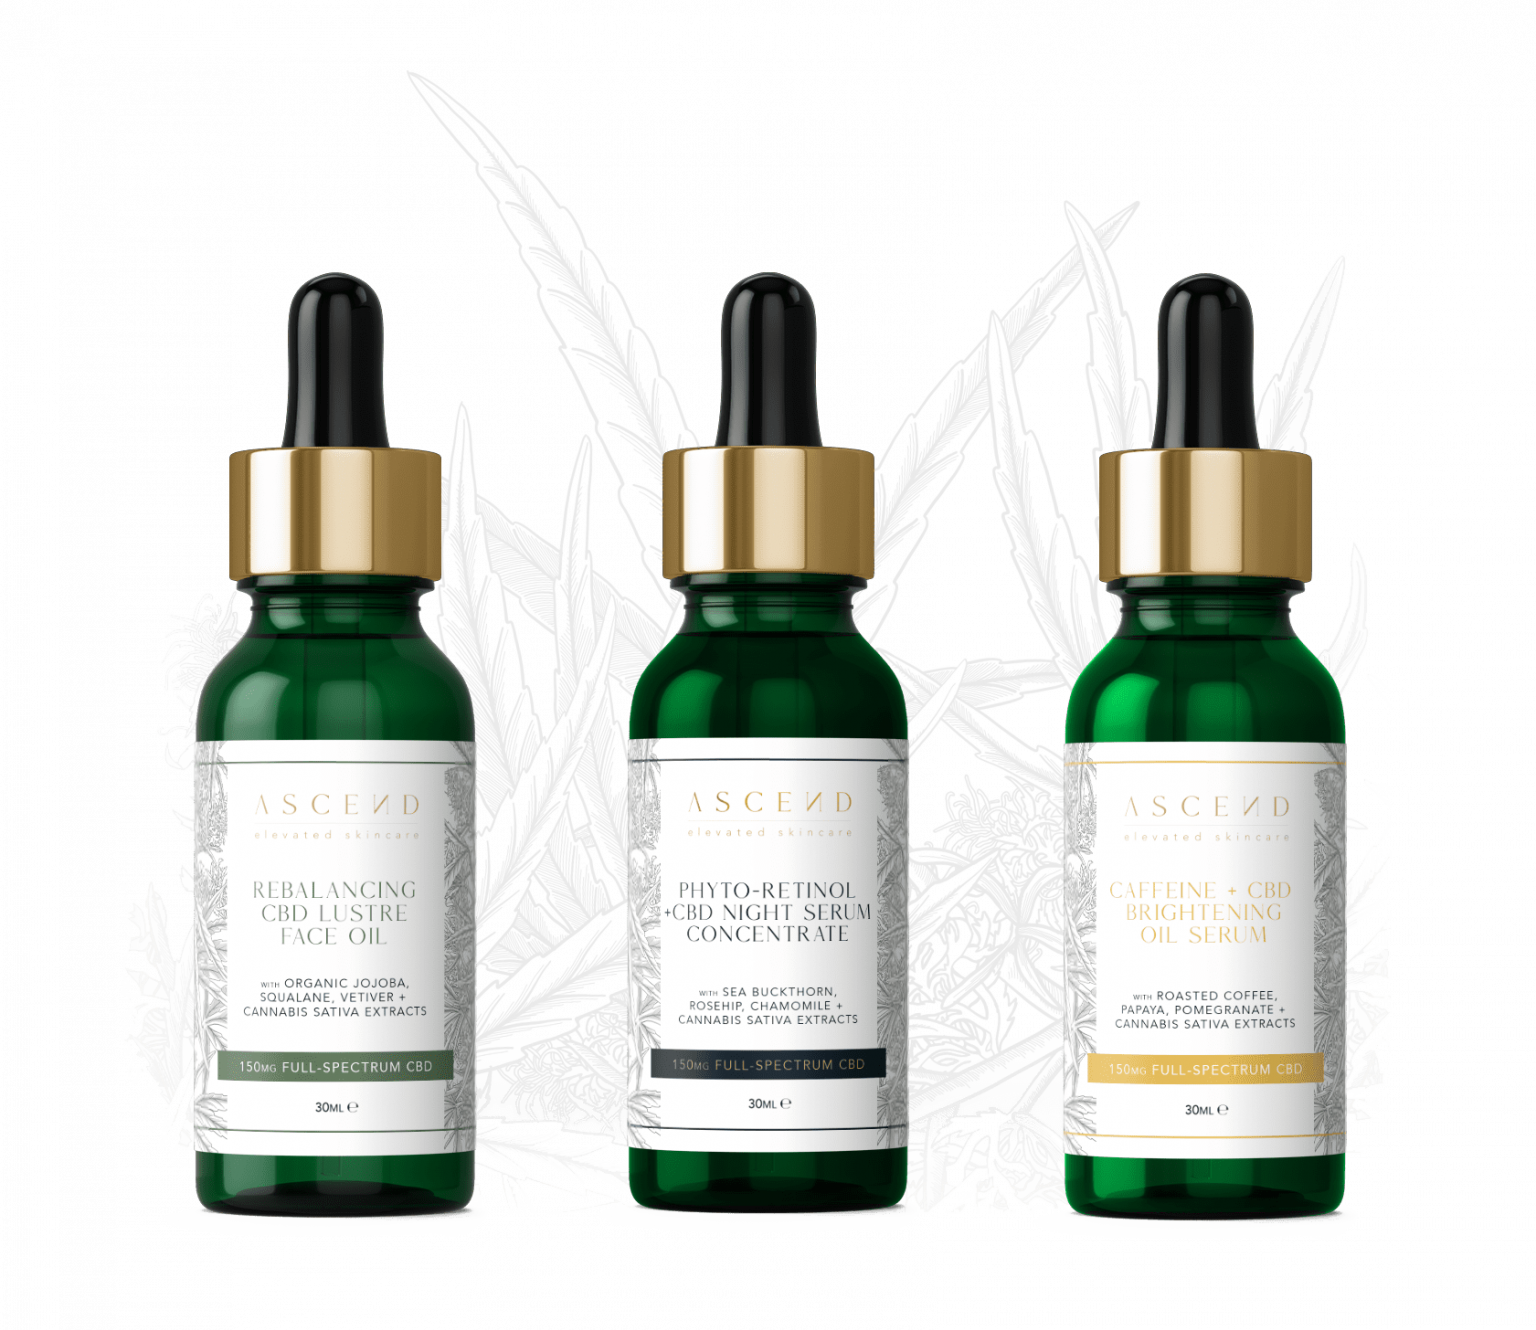 ASCEND Elevated Skincare products all our different serums and oils in a row.